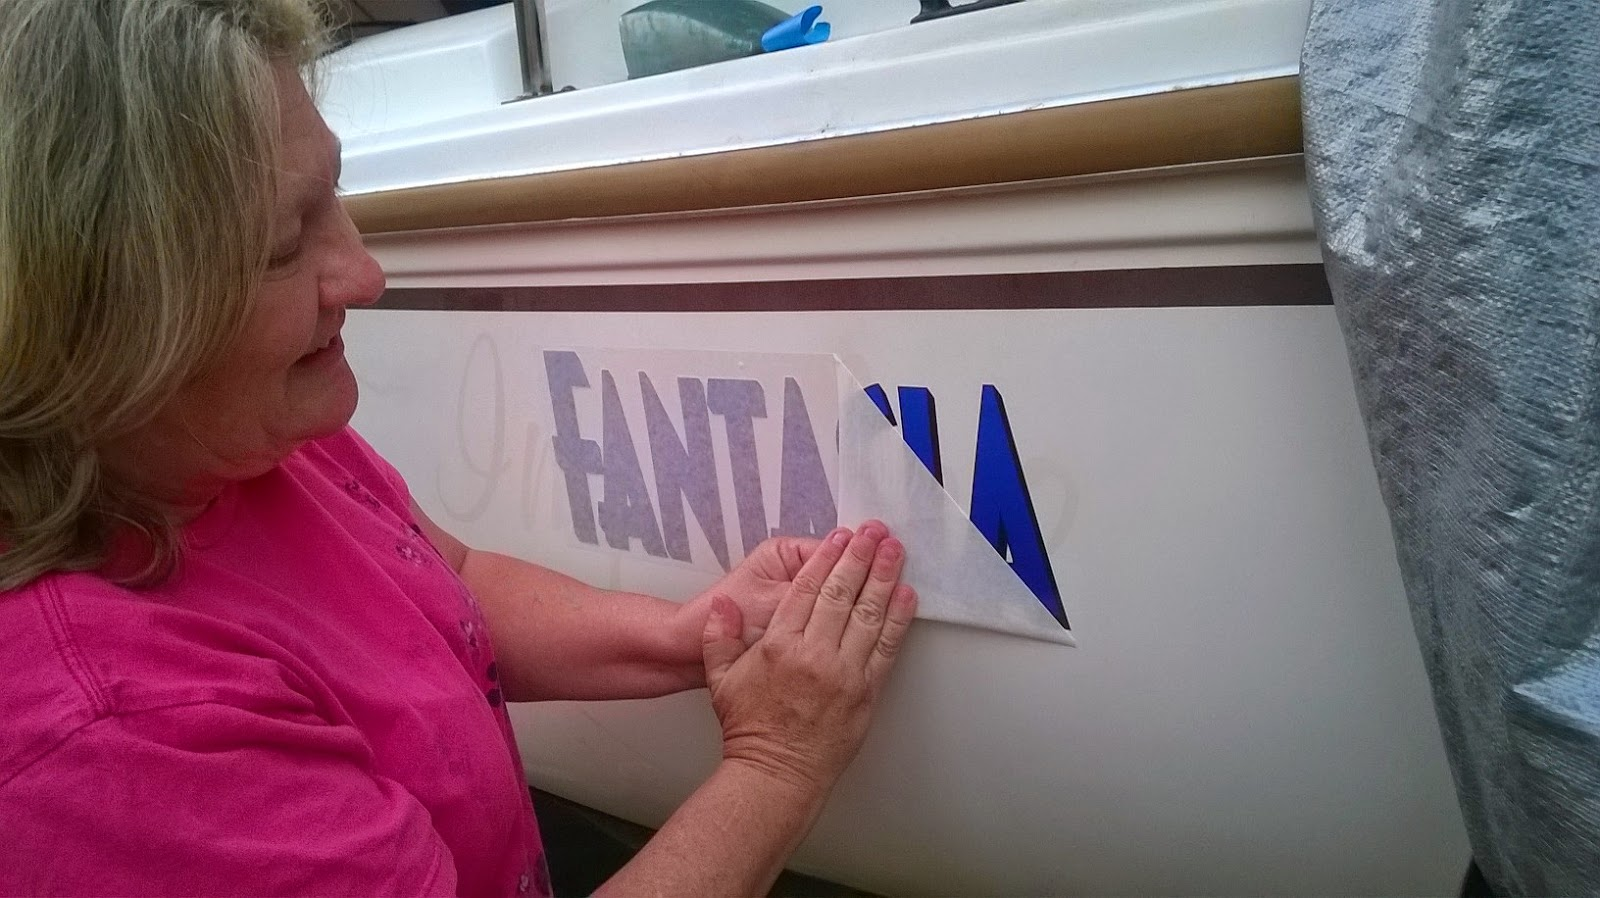 Adding vinyl name to Fantasia